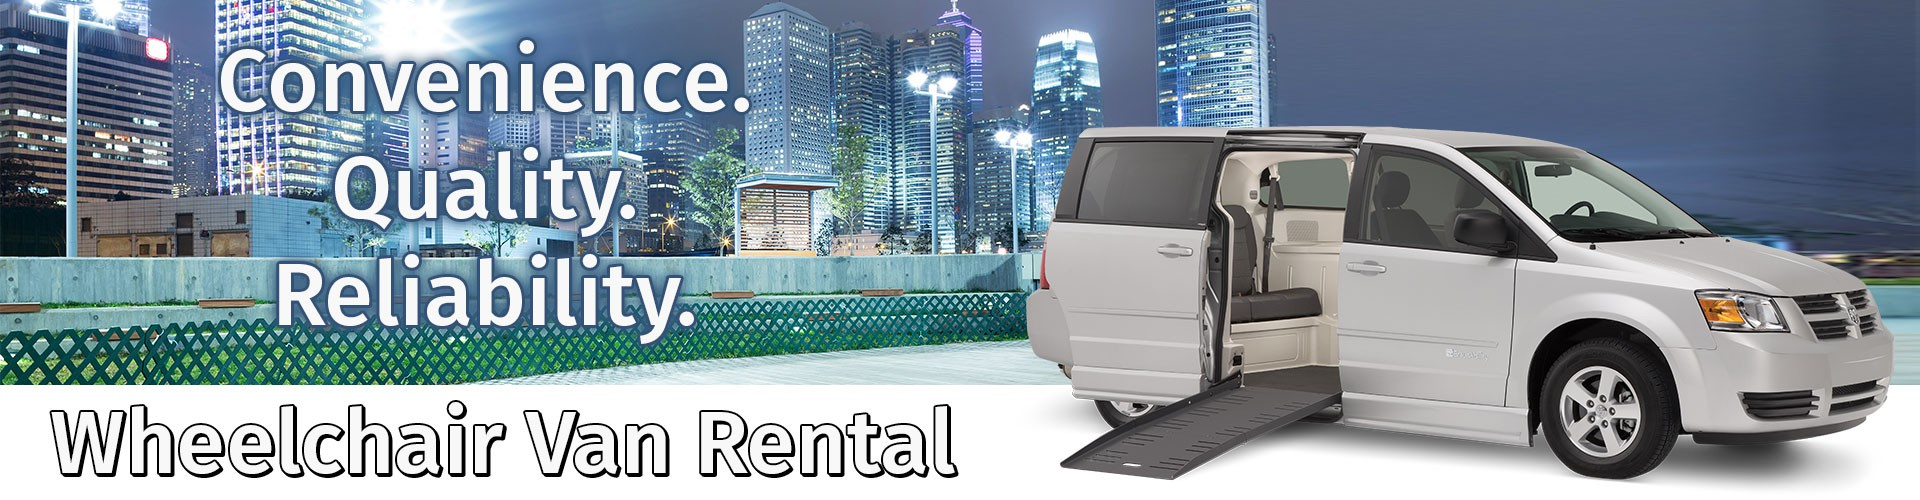 Wheelchair Van Rental Florida